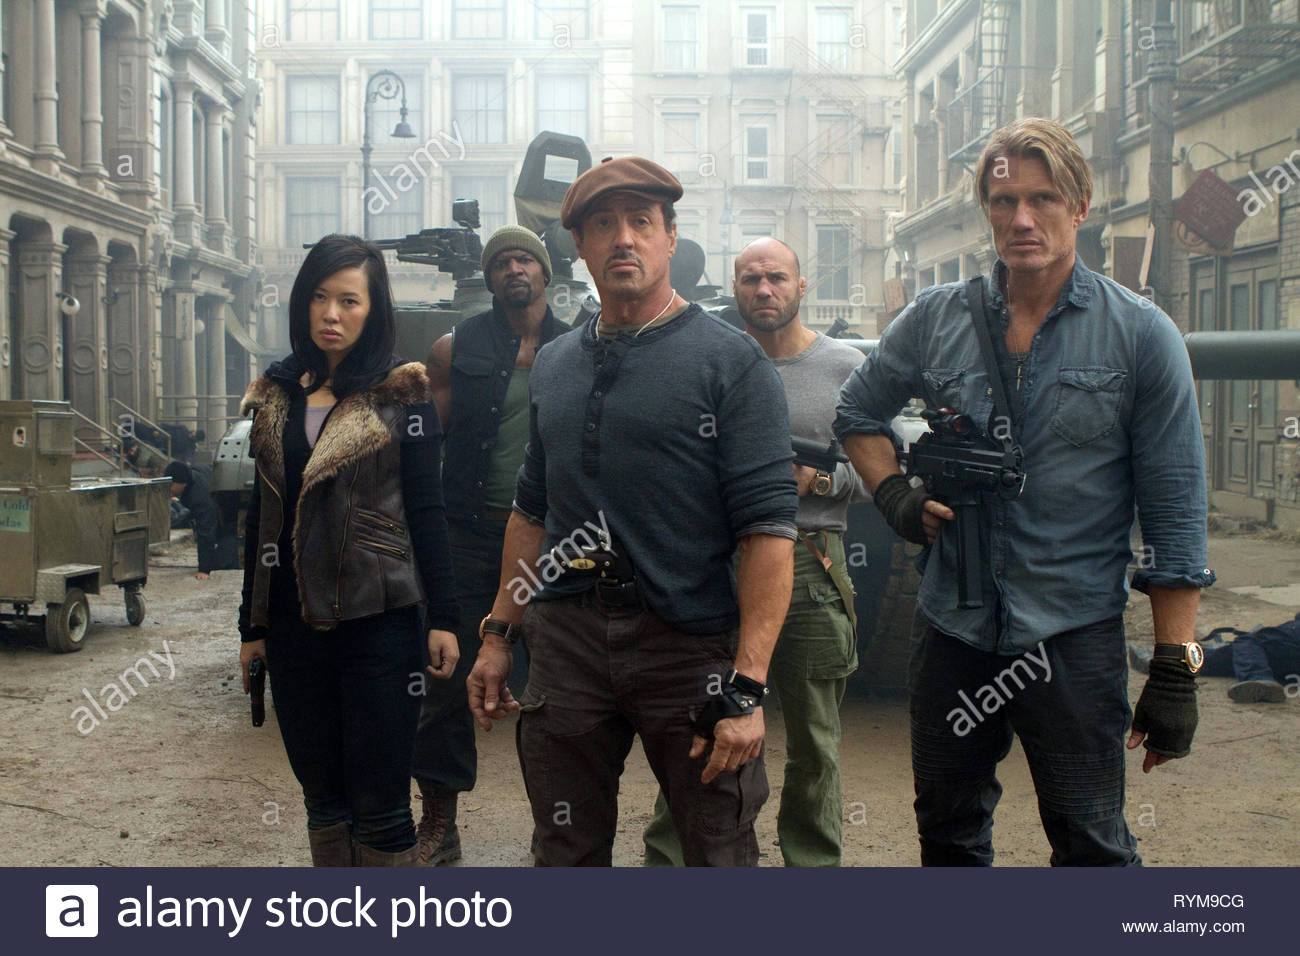 YU,CREWS,STALLONE,COUTURE,LUNDGREN, THE EXPENDABLES 2, 2012 - Stock Image